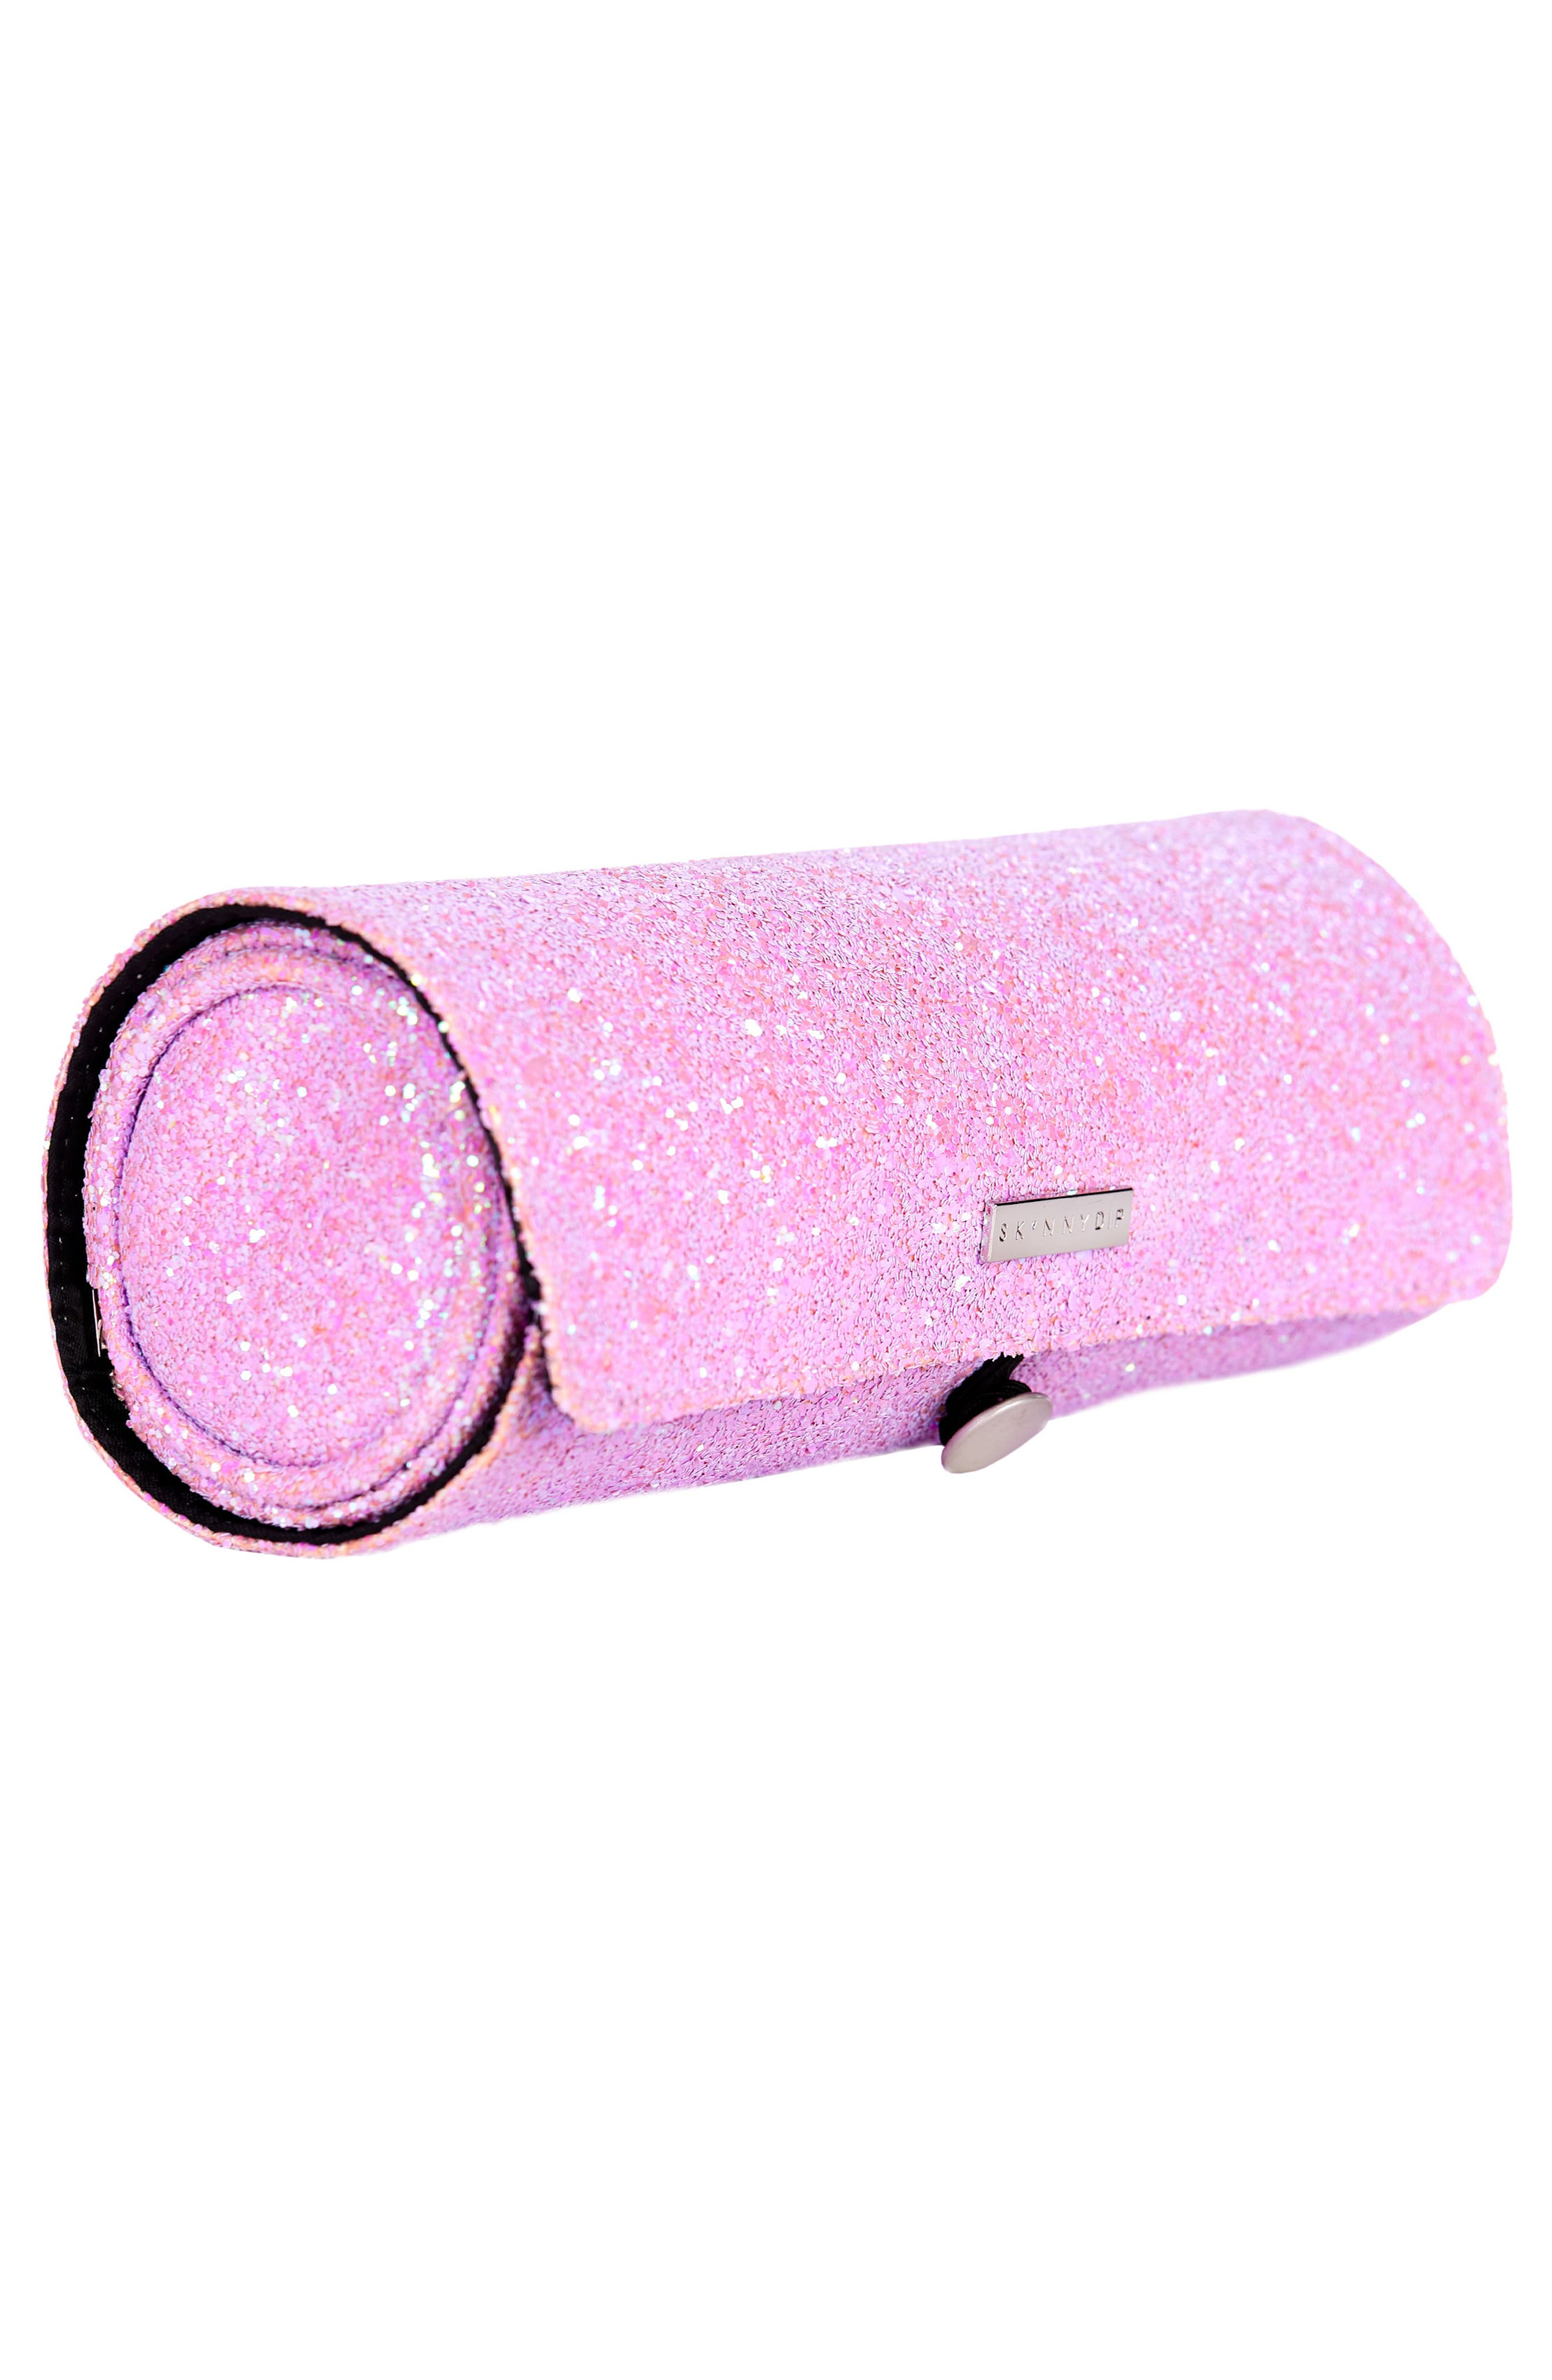 Skinny Dip Pink Glitsy Brush Roll,                             Alternate thumbnail 3, color,                             NO COLOR